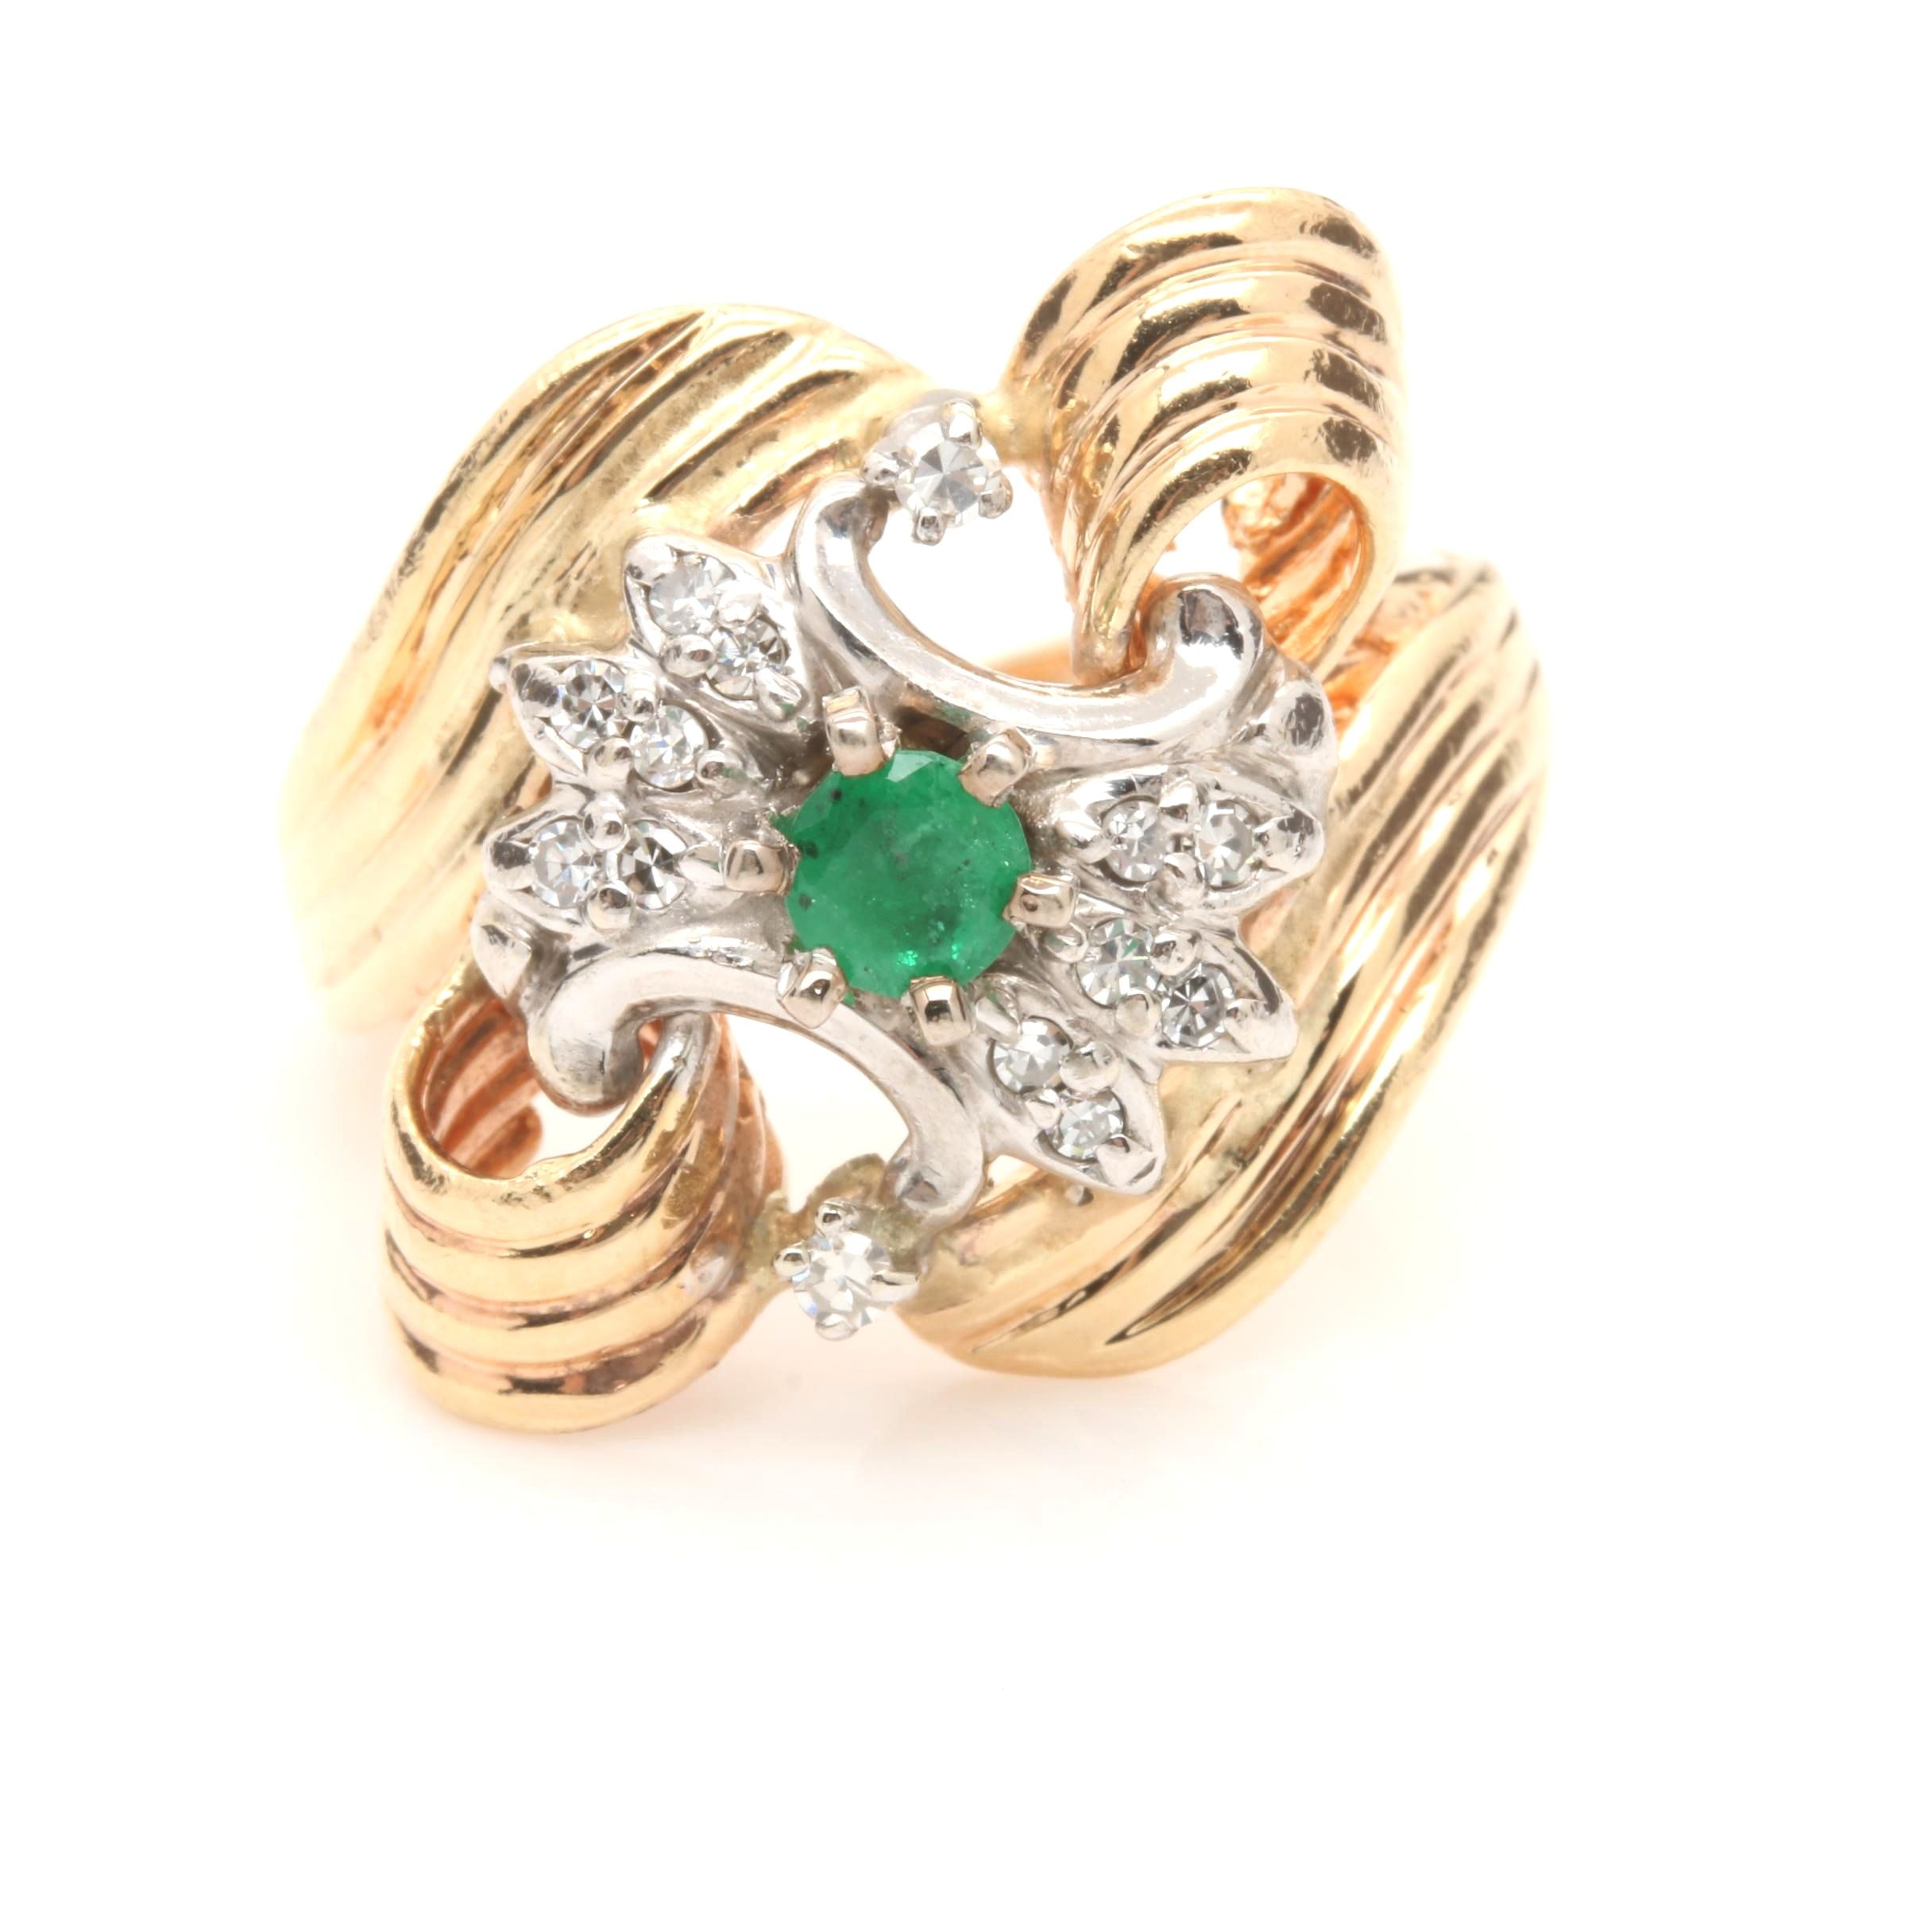 Vintage 14K Yellow Gold Diamond and Emerald Ring